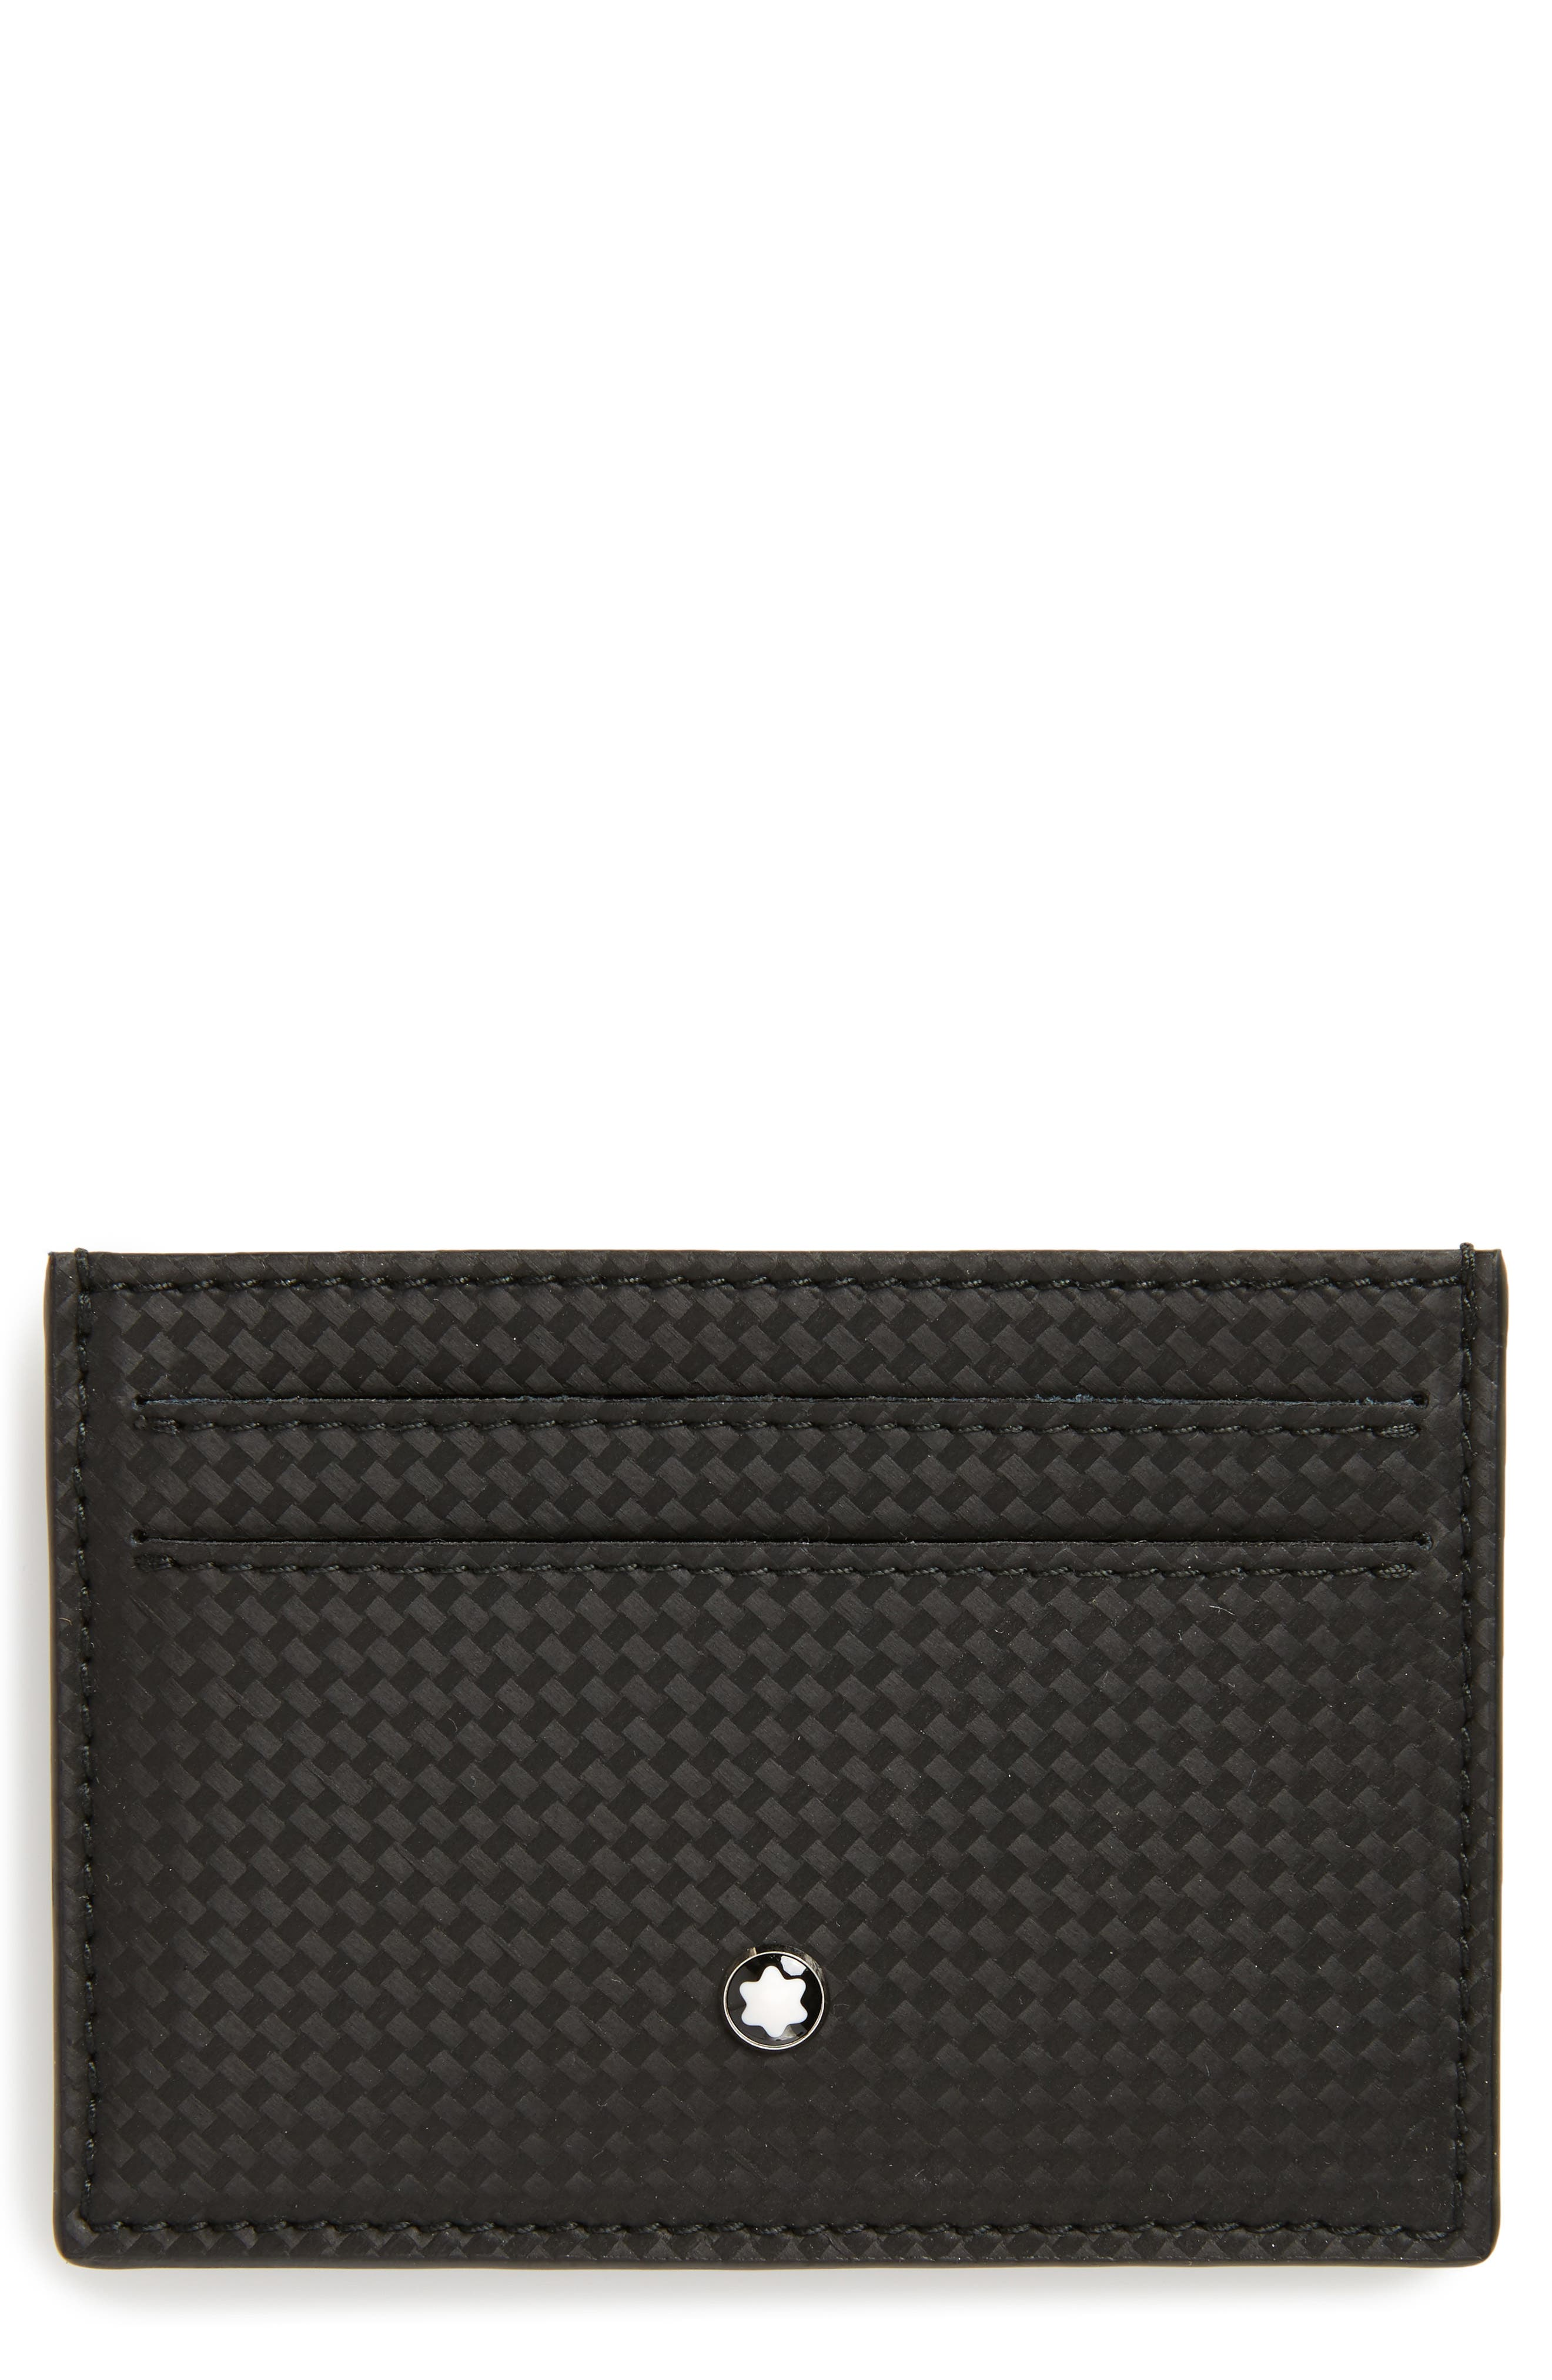 MONTBLANC, Extreme Leather Card Case, Main thumbnail 1, color, 001